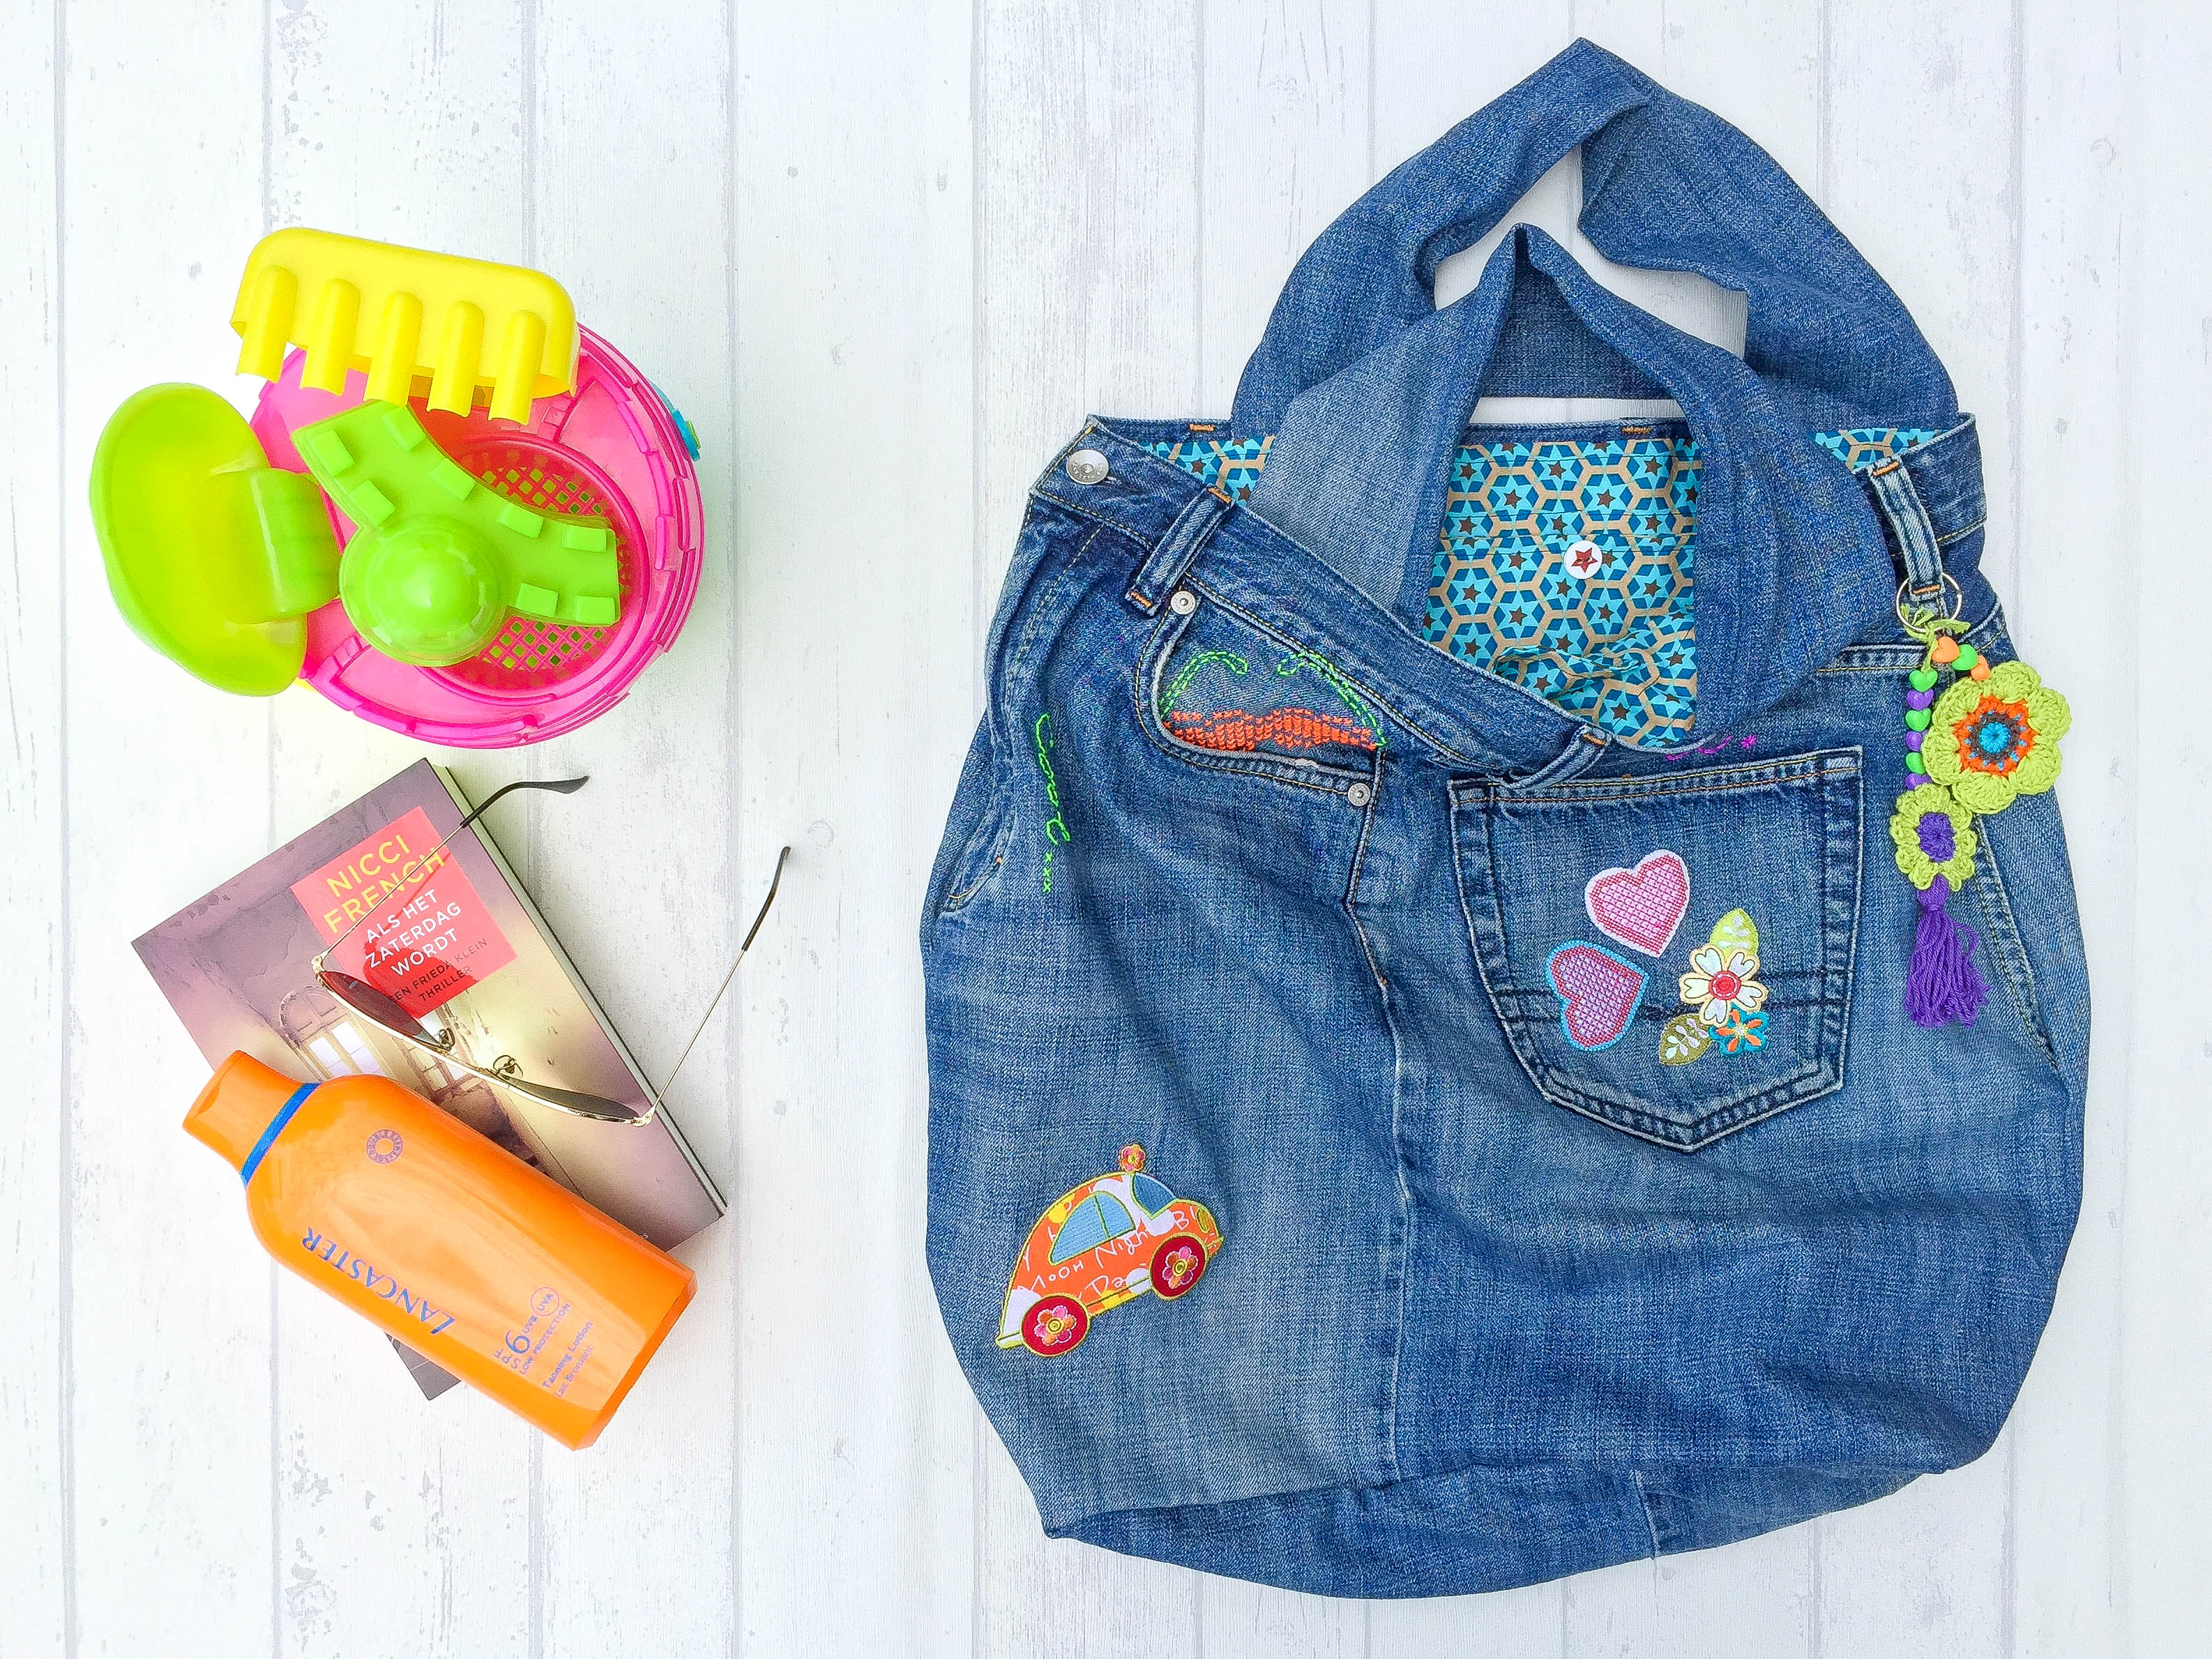 The Beach Bag – a recycled and pimped up bag from an old pair of jeans